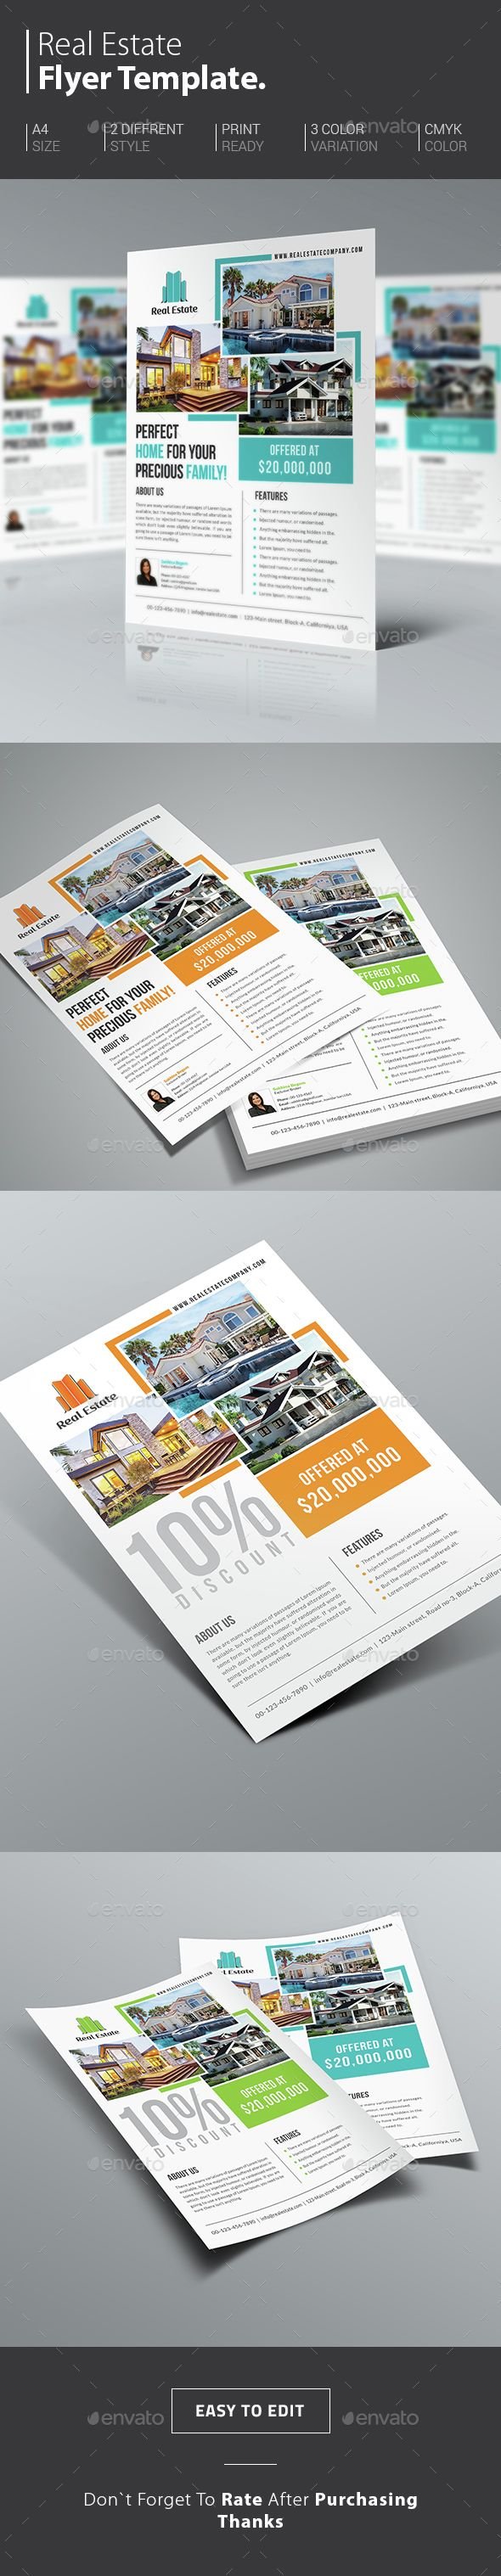 Real Estate Flyer - Corporate Flyers                                                                                                                                                                                 More